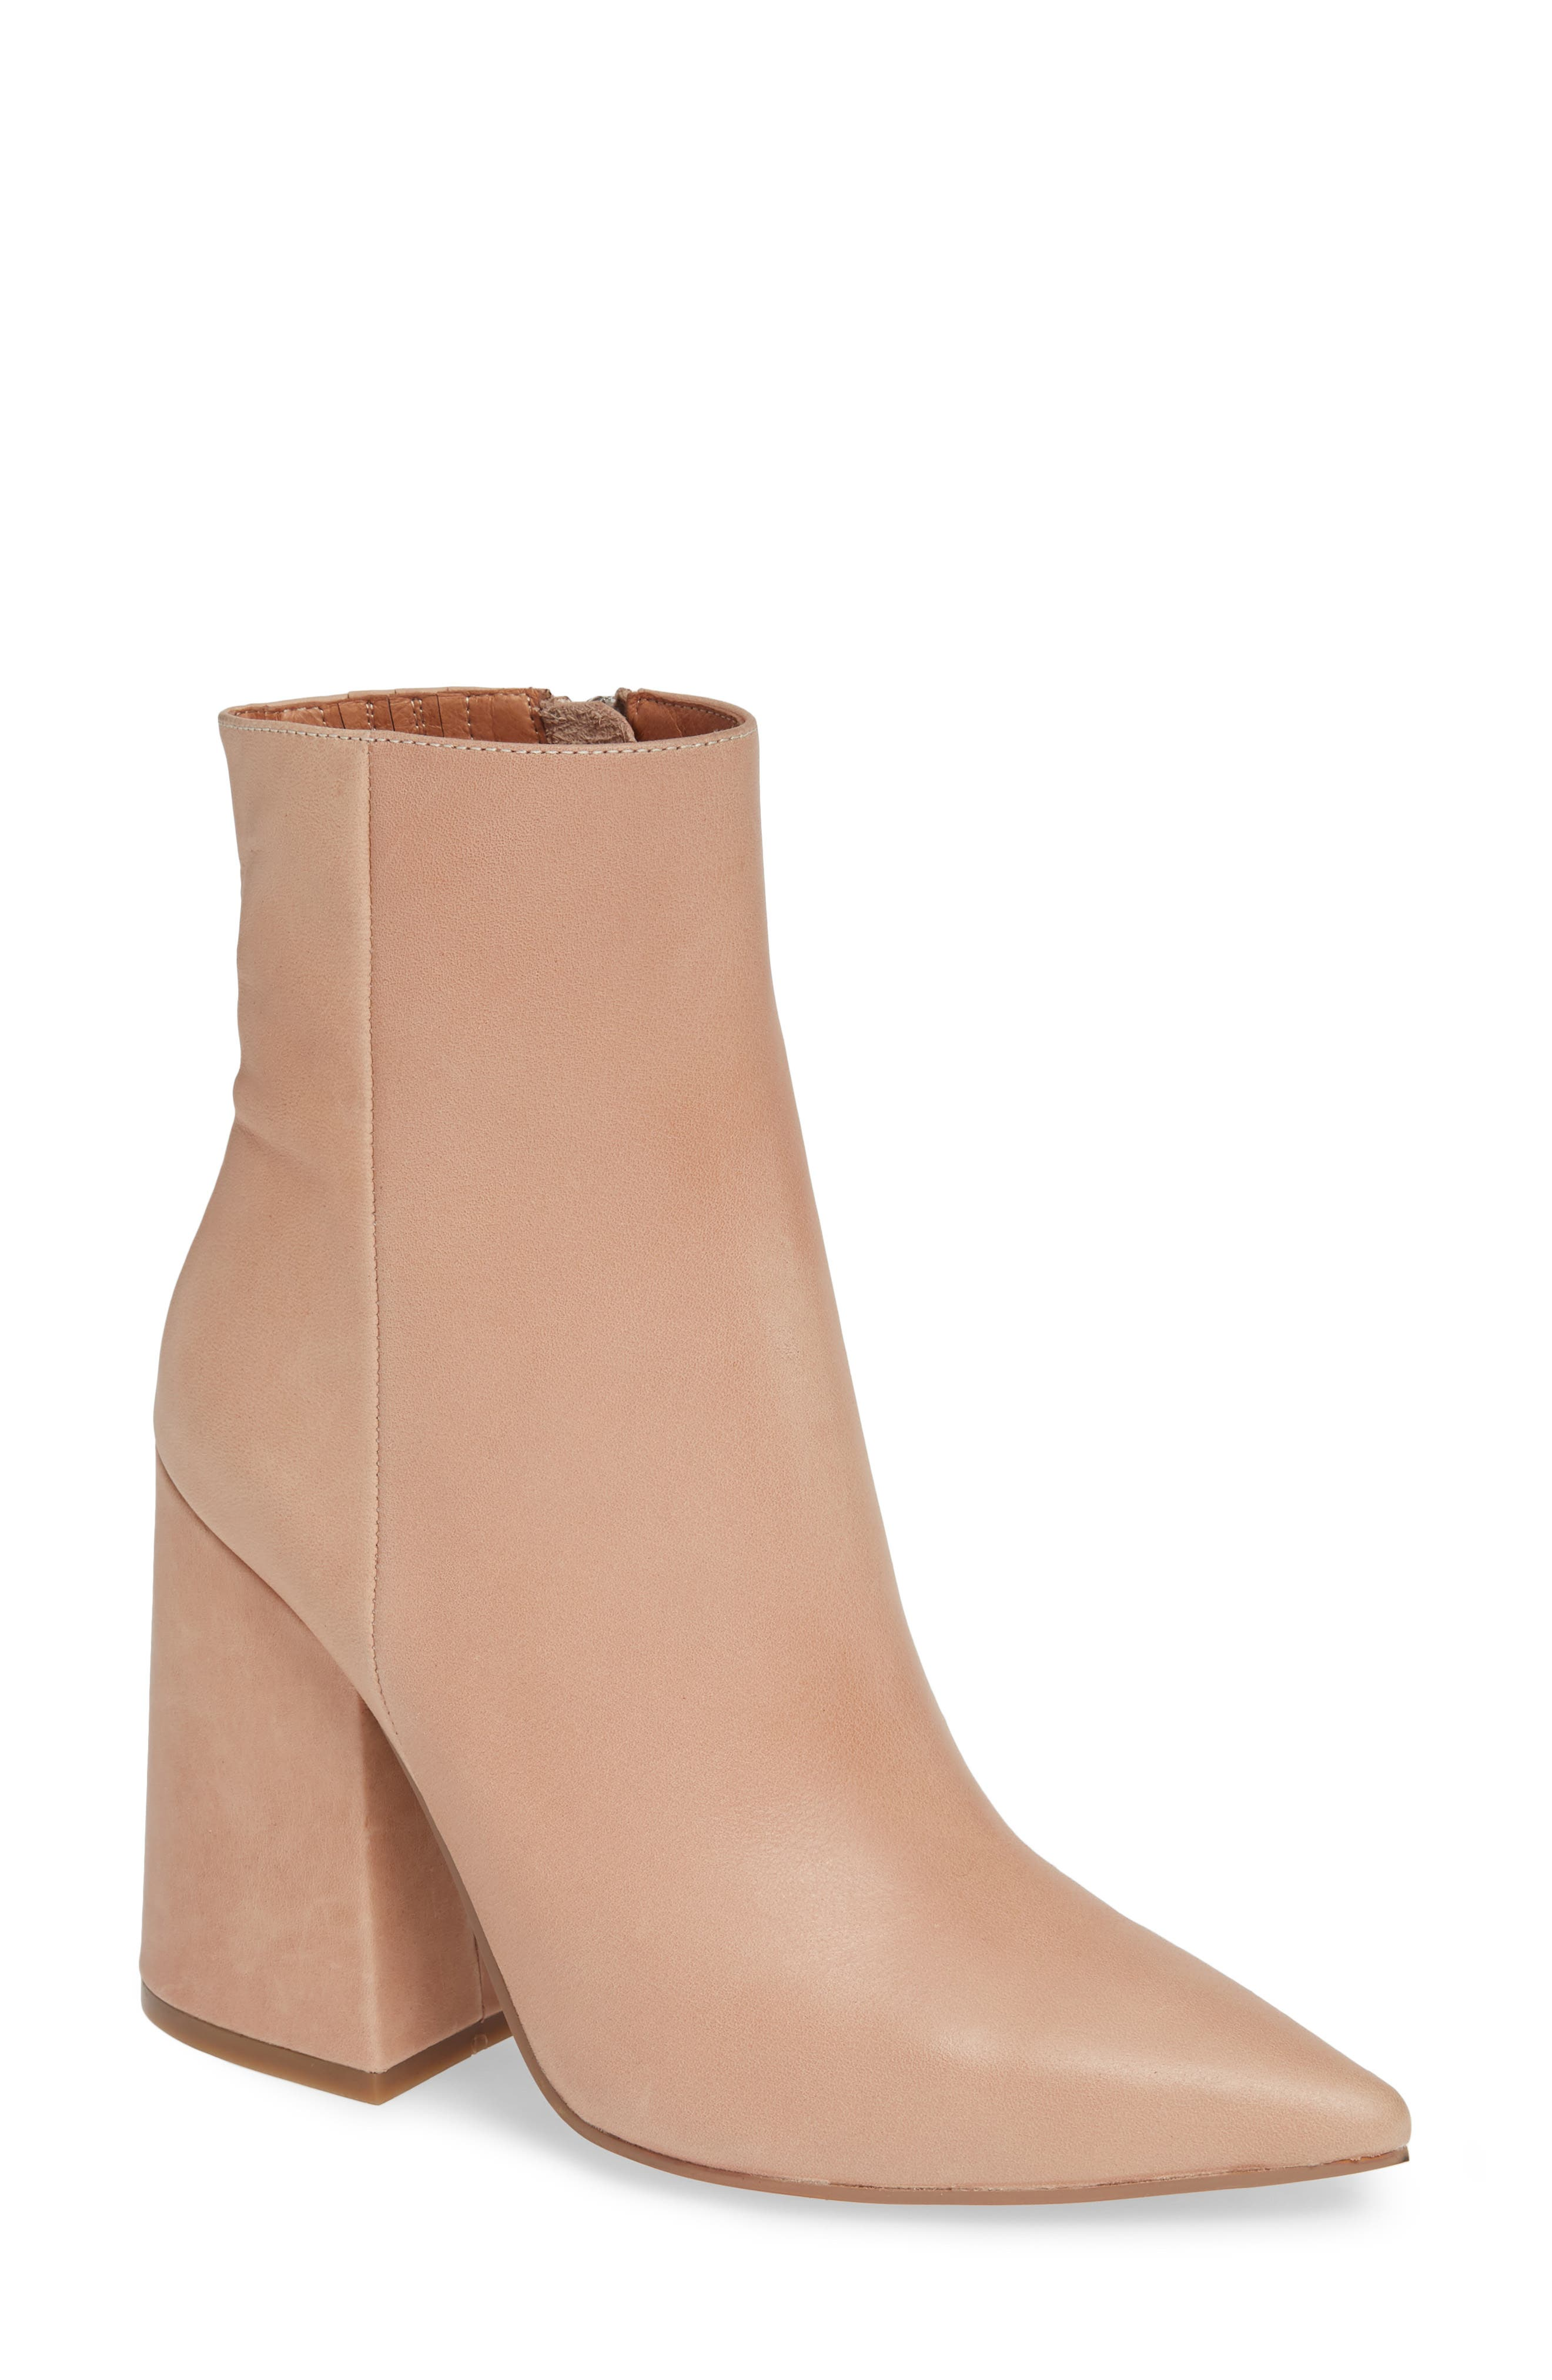 ALIAS MAE Ahara Bootie in Blush Leather